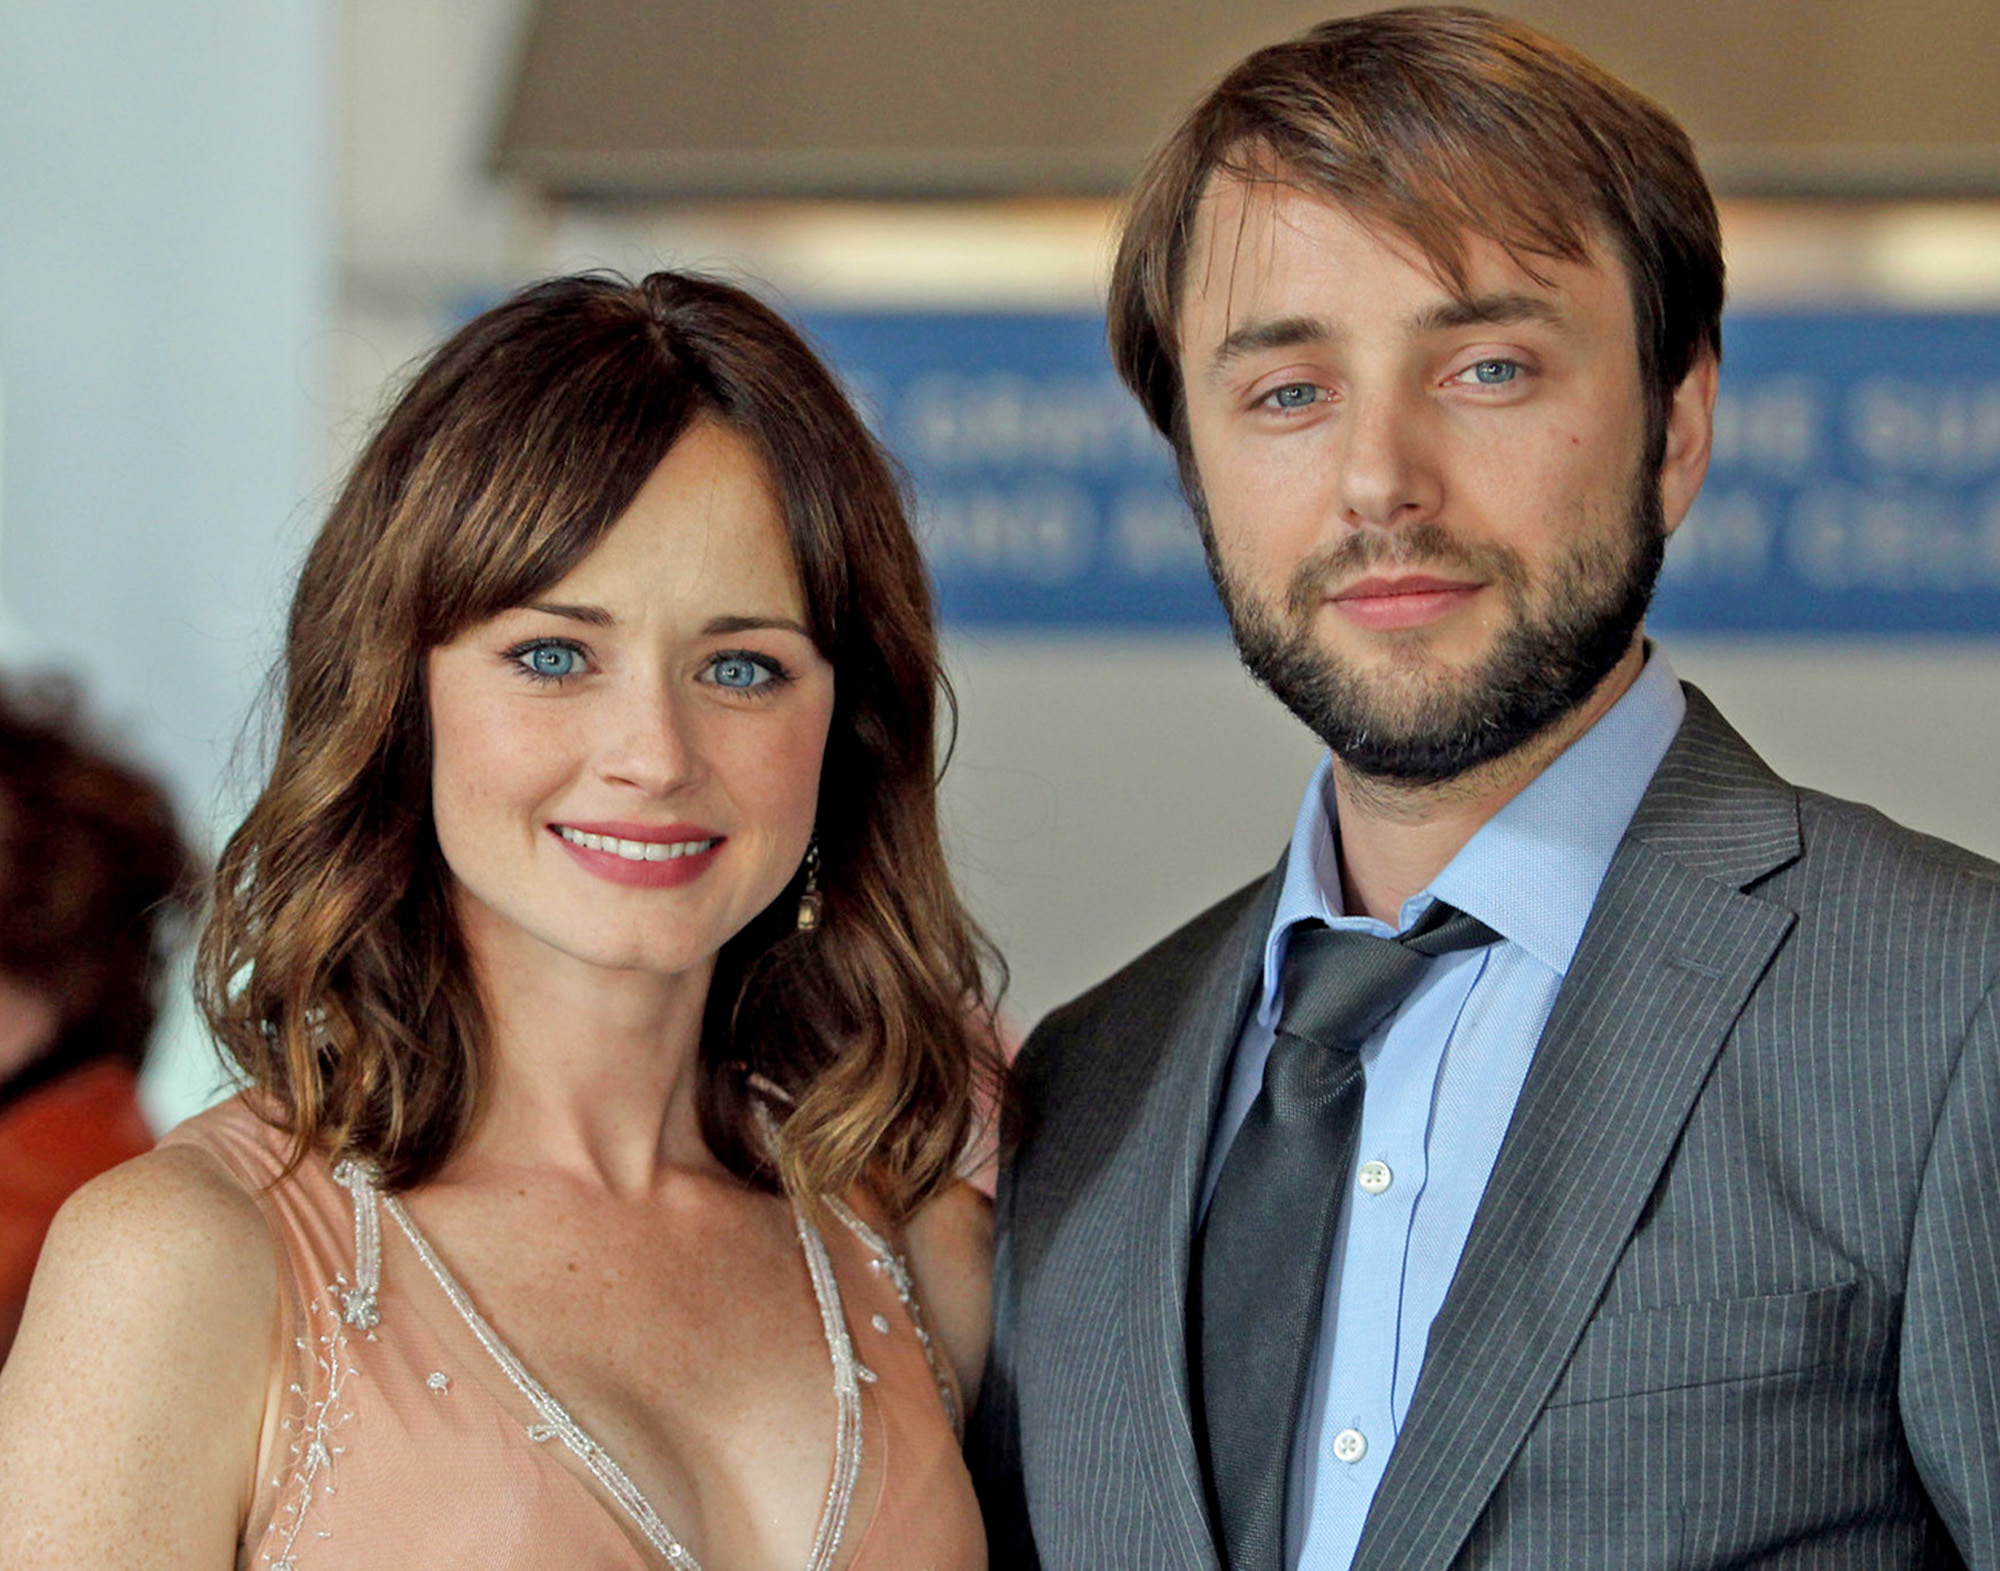 john paul dating alexis bledel Alexis bledel i would die for  this pin was discovered by john carlson  discover (and save) your own pins on pinterest  di jean-paul aussenard.